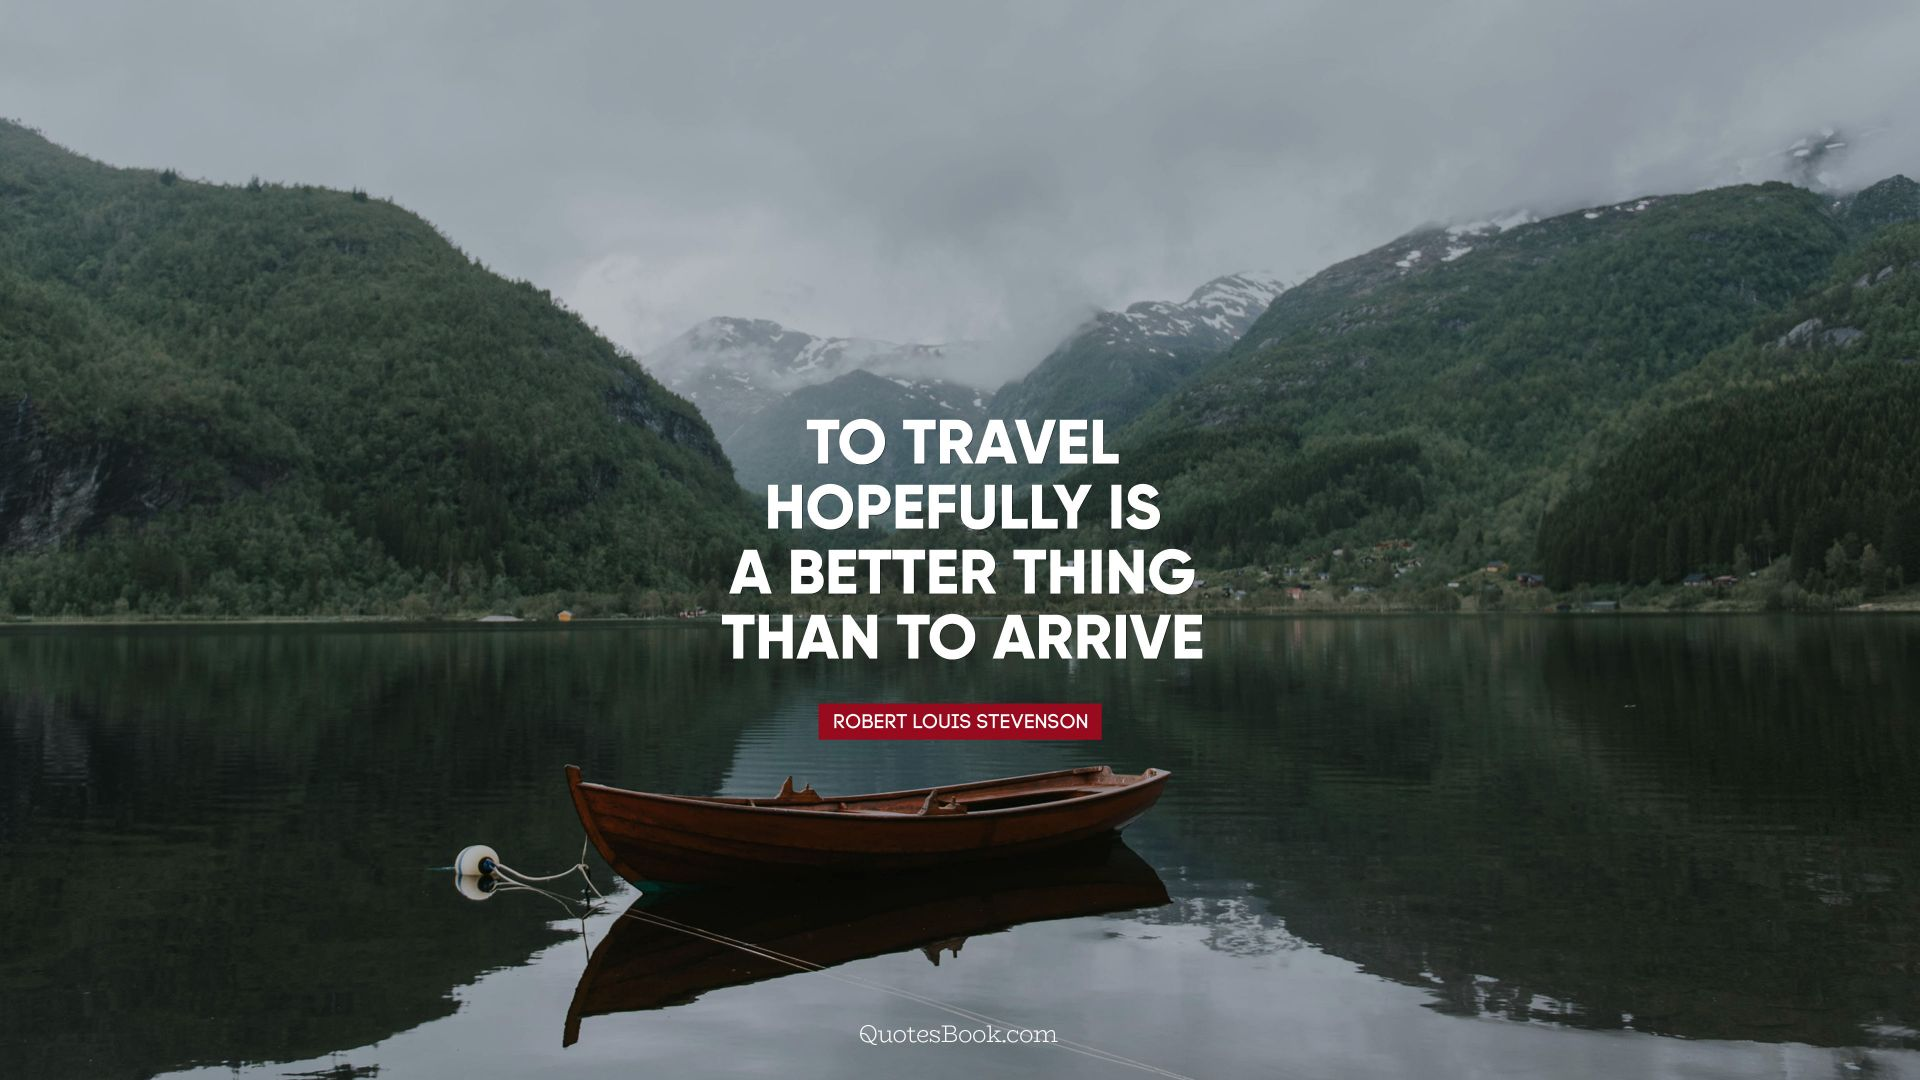 To travel hopefully is a better thing than to arrive. - Quote by Robert Louis Stevenson